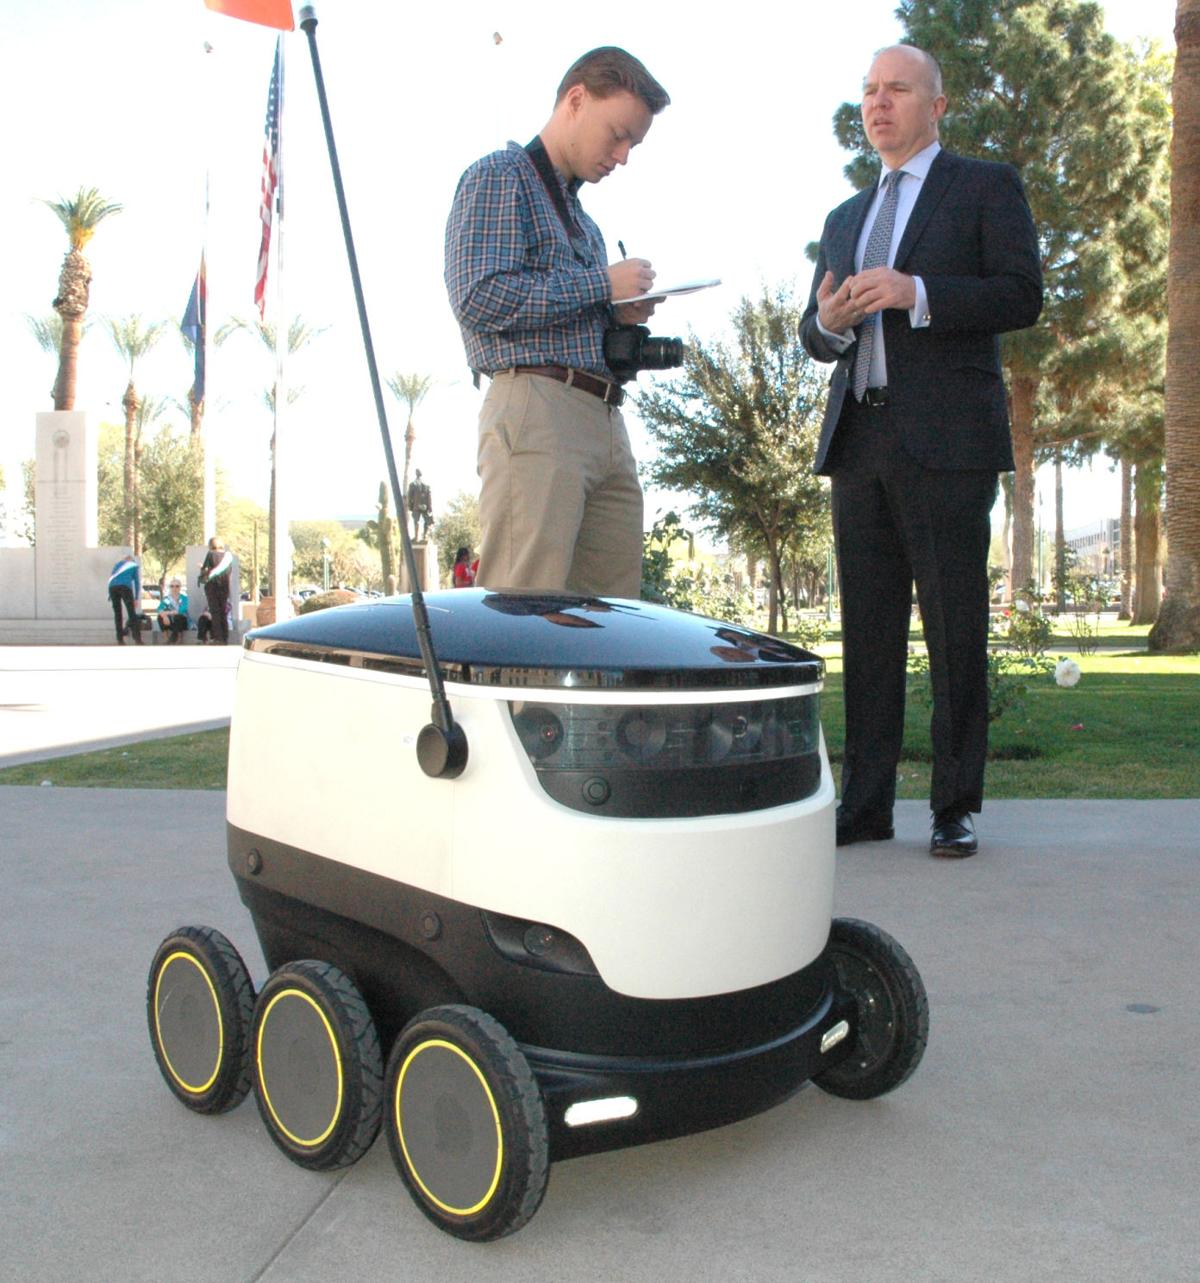 A reporter grills David Catania, spokesman for Starship Technologies, about the company's delivery drones.